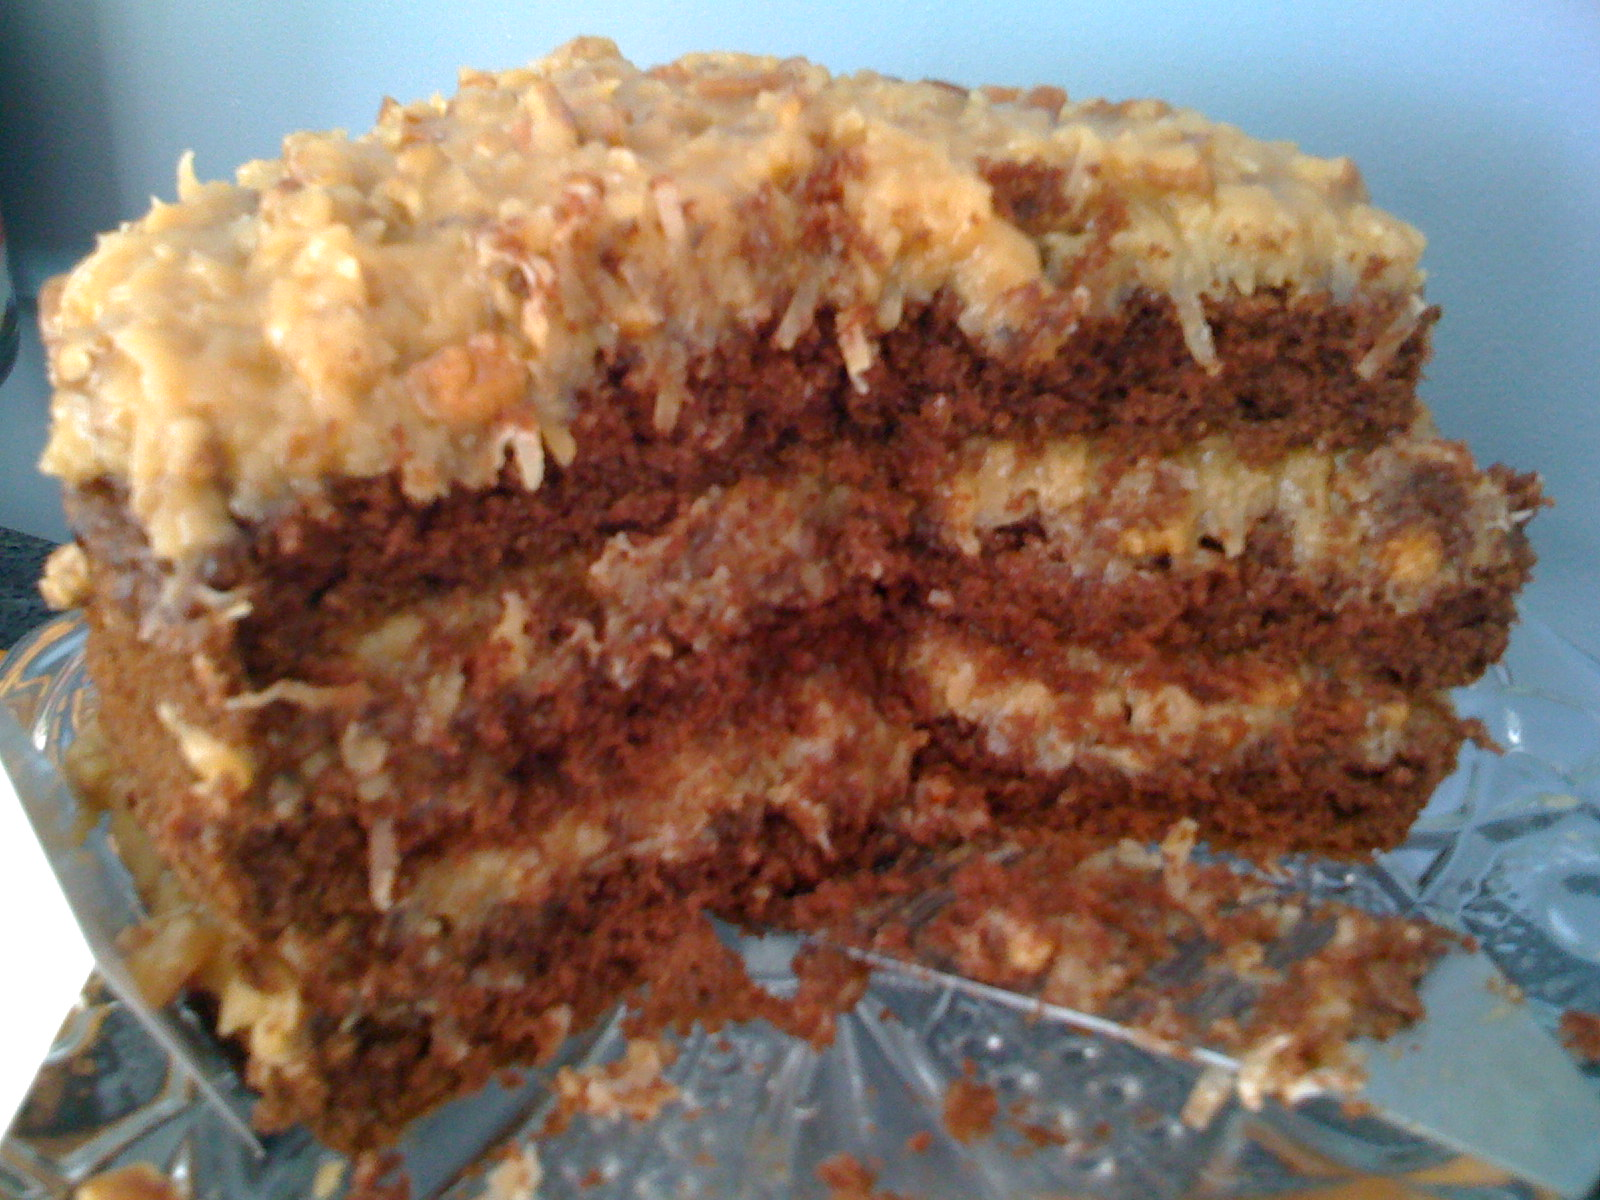 Homemade German Chocolate Cake | T Baker's Cakes